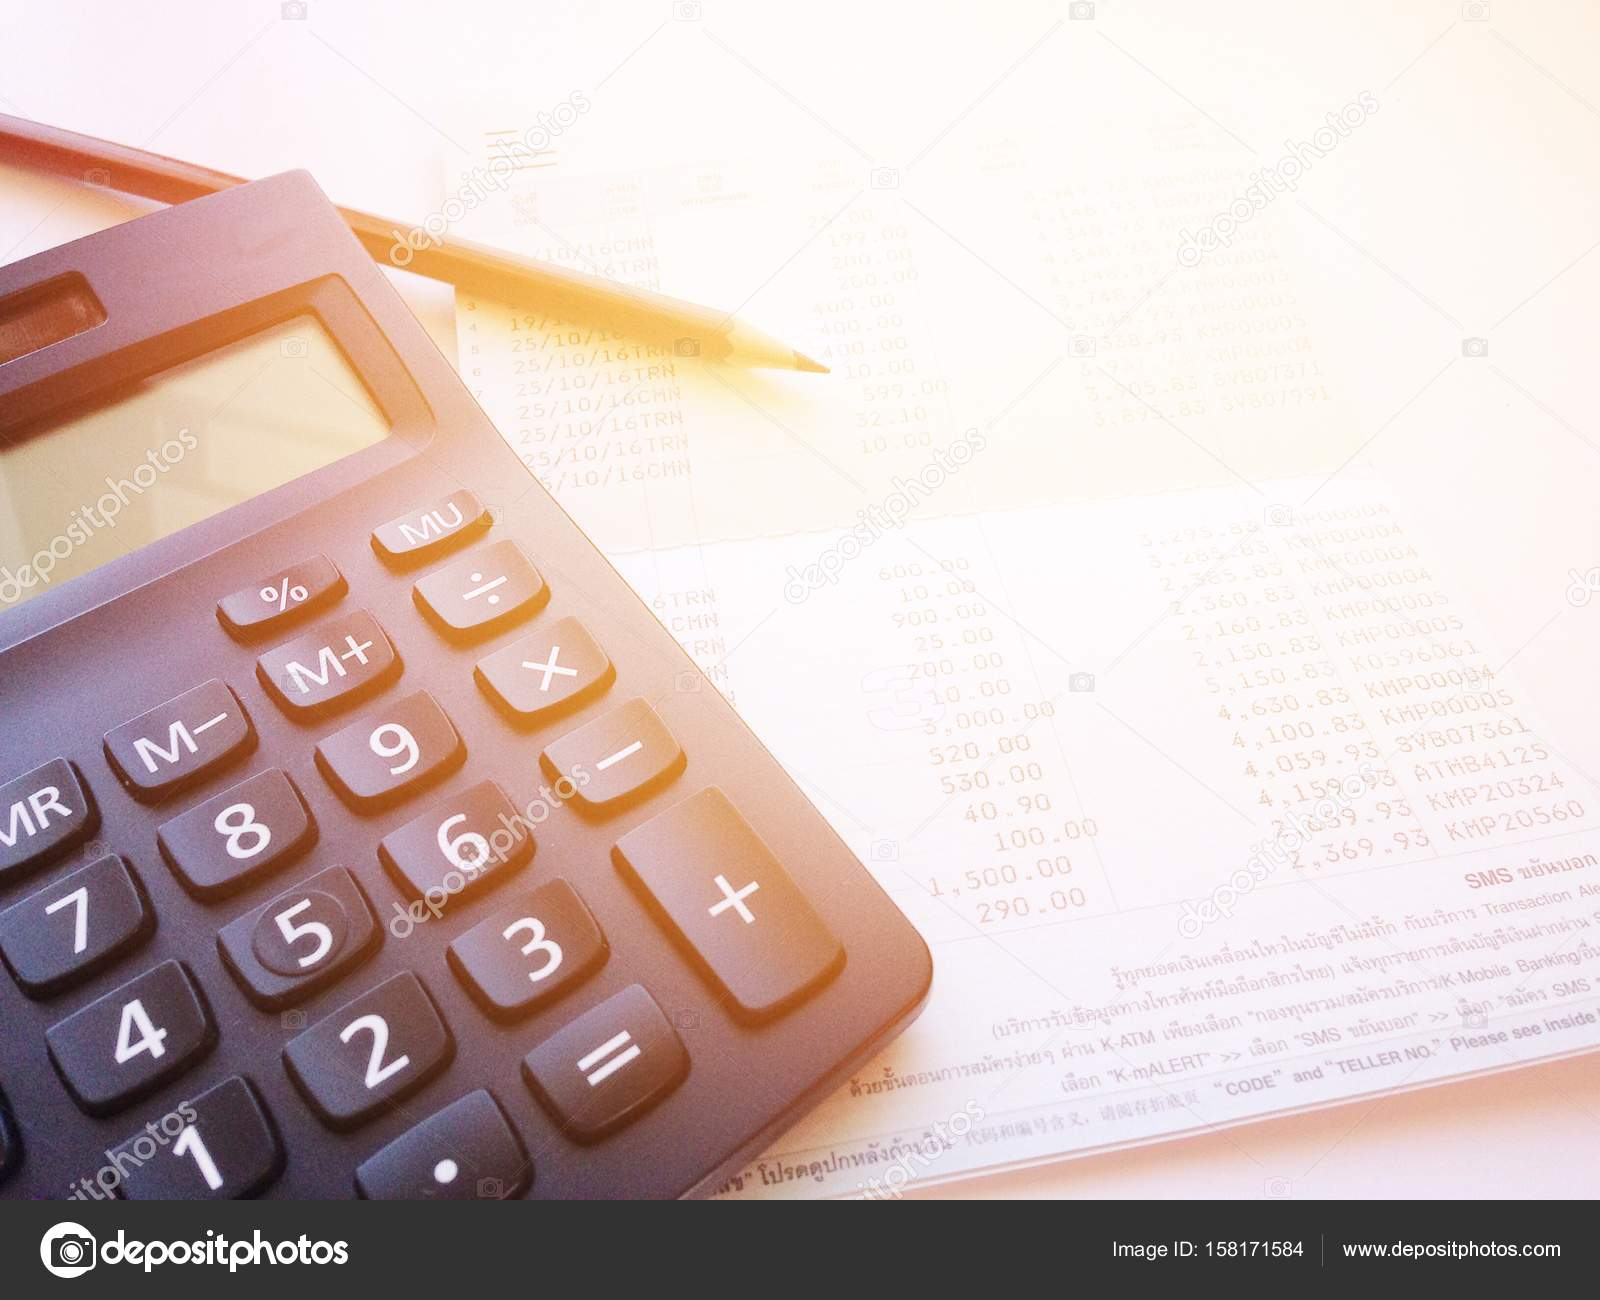 Business, Finance, Savings, Banking Or Loan Concept : Pencil, Calculator  And Savings Account Passbook Or Financial Statement On White Background U2014  Photo By ...